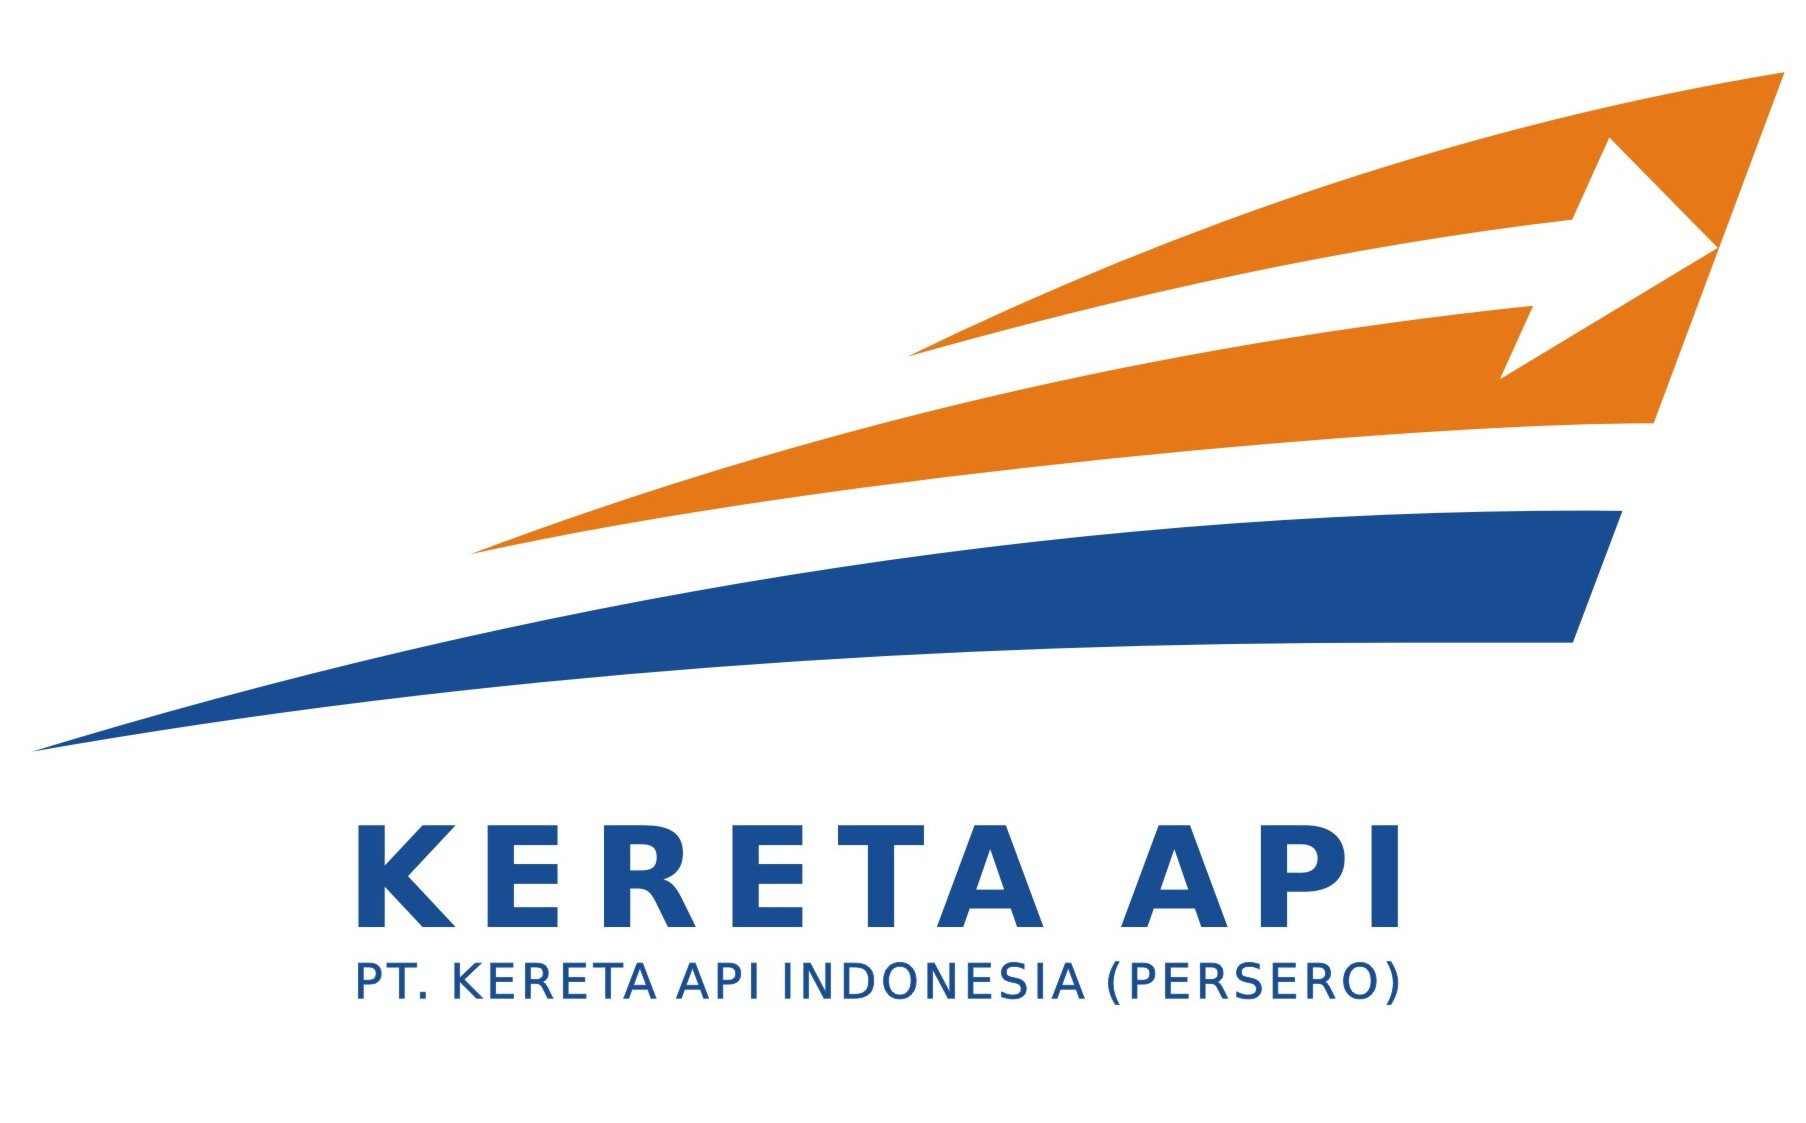 The Official Website of PT. INDOSMART KOMUNIKASI GLOBAL